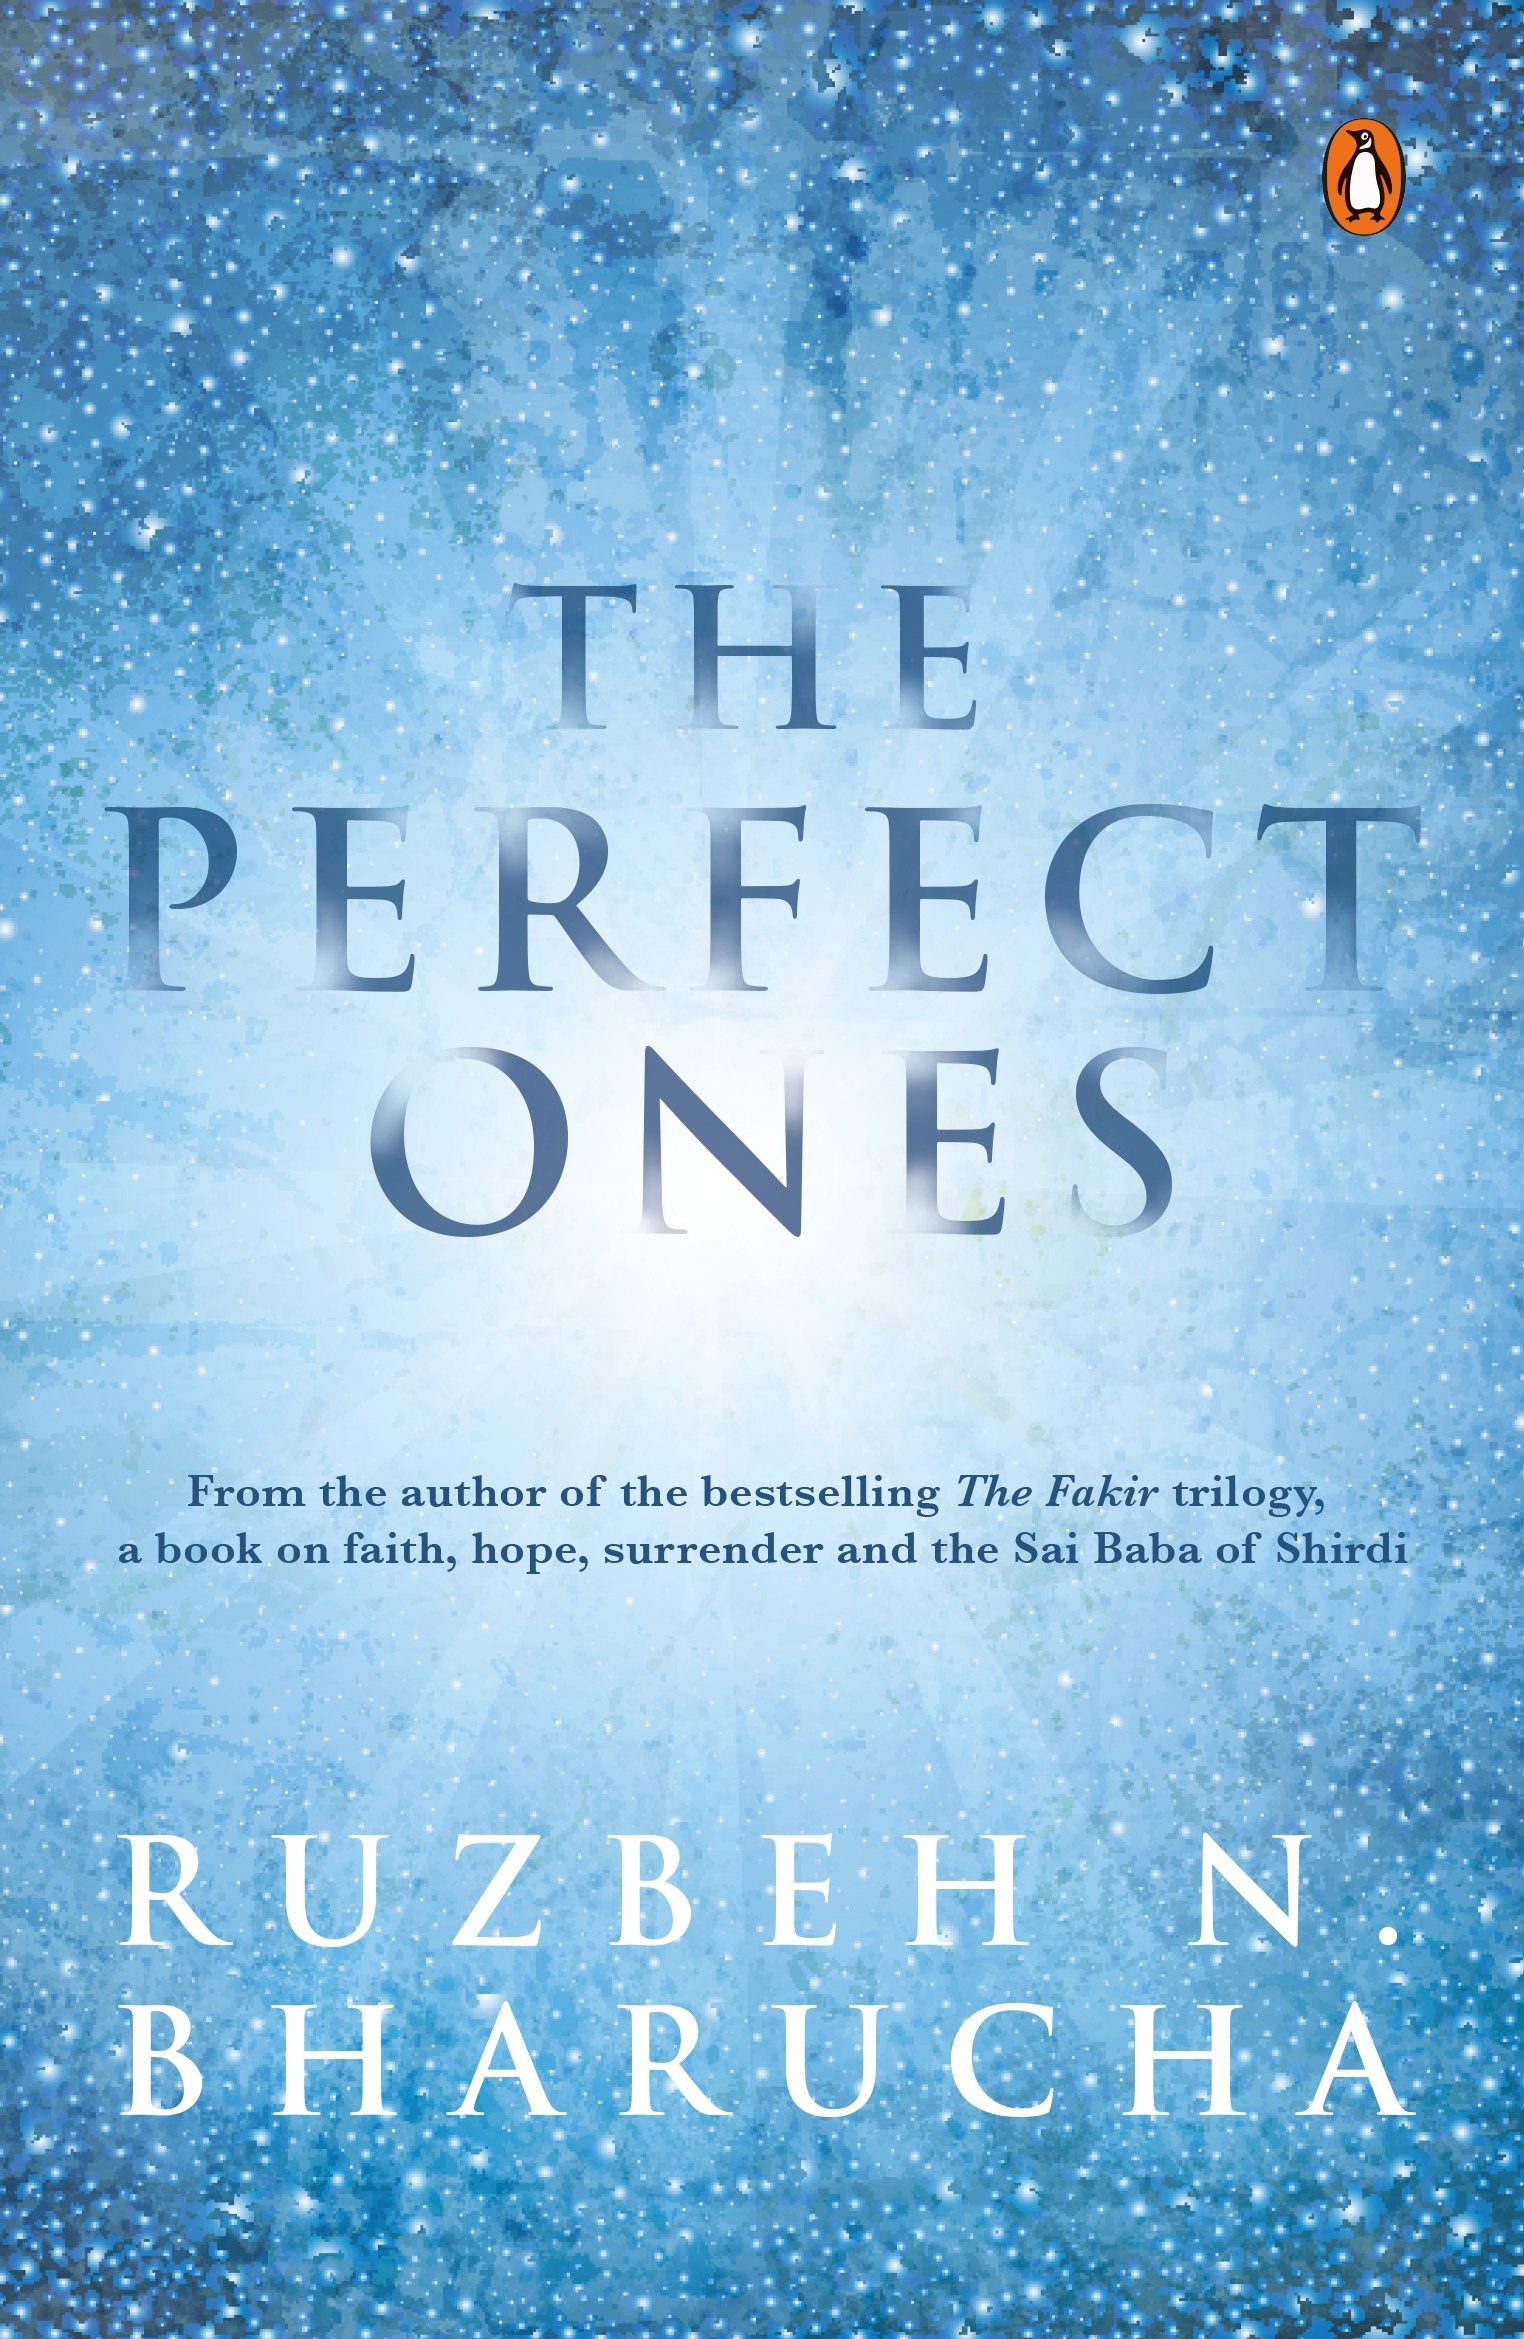 Buy The Perfect Ones Book Online at Low Prices in India | The ...